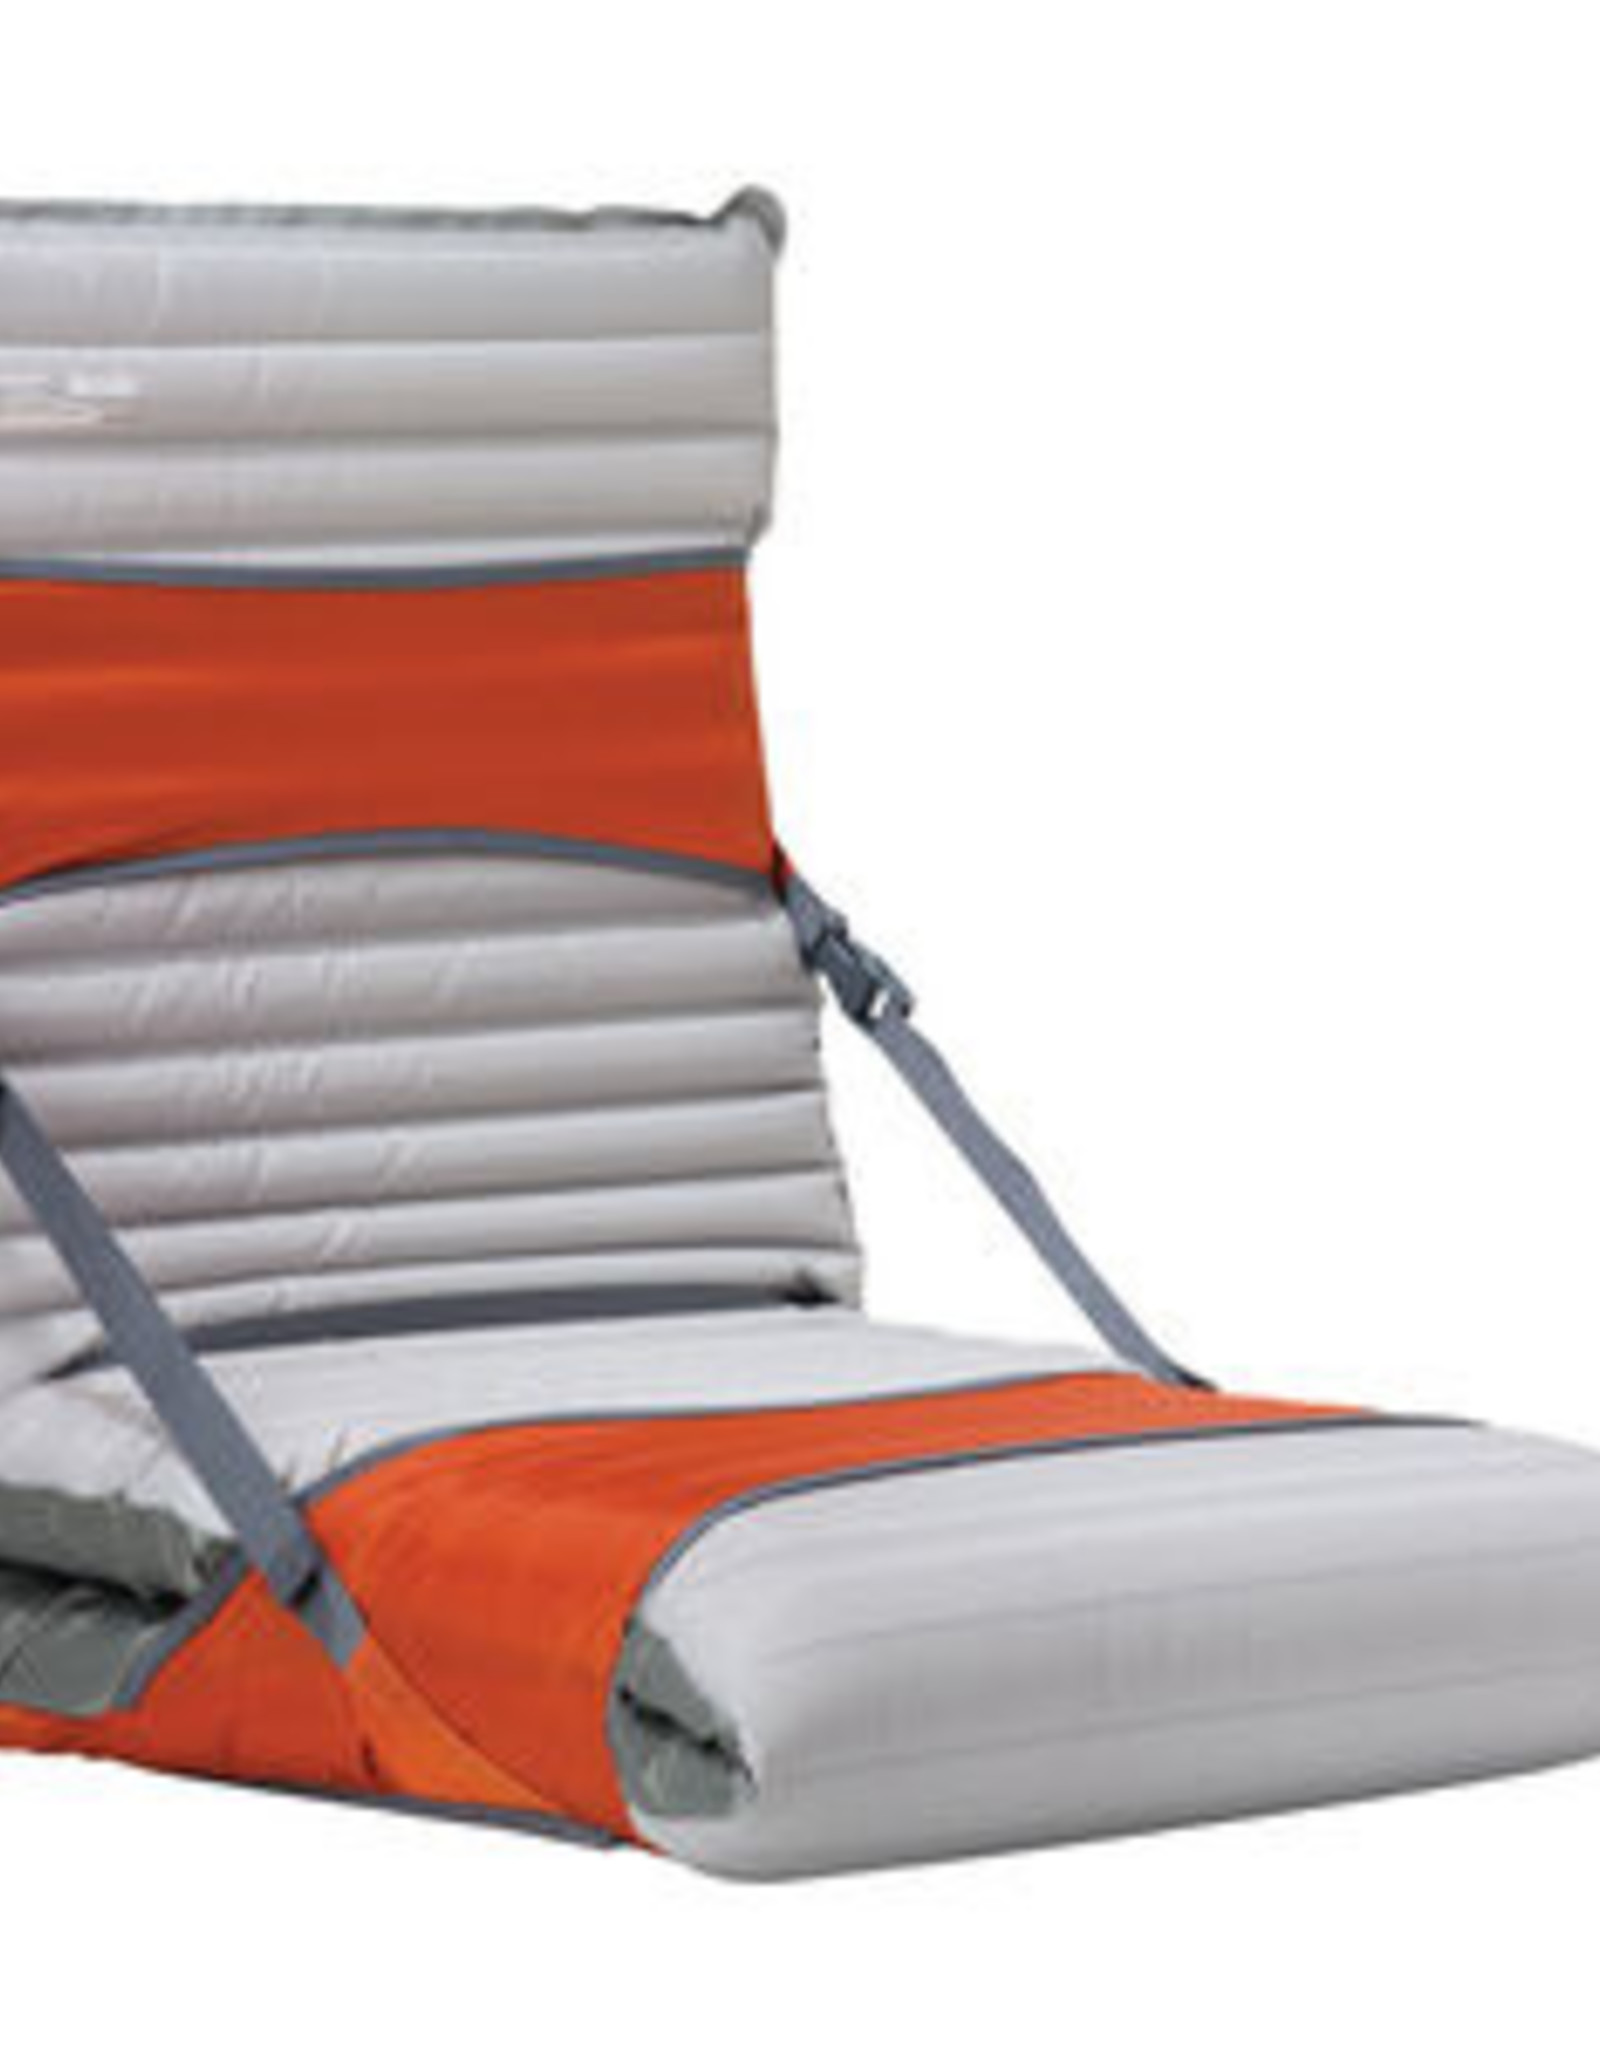 thermarest ThermaRest Chair Kit 25